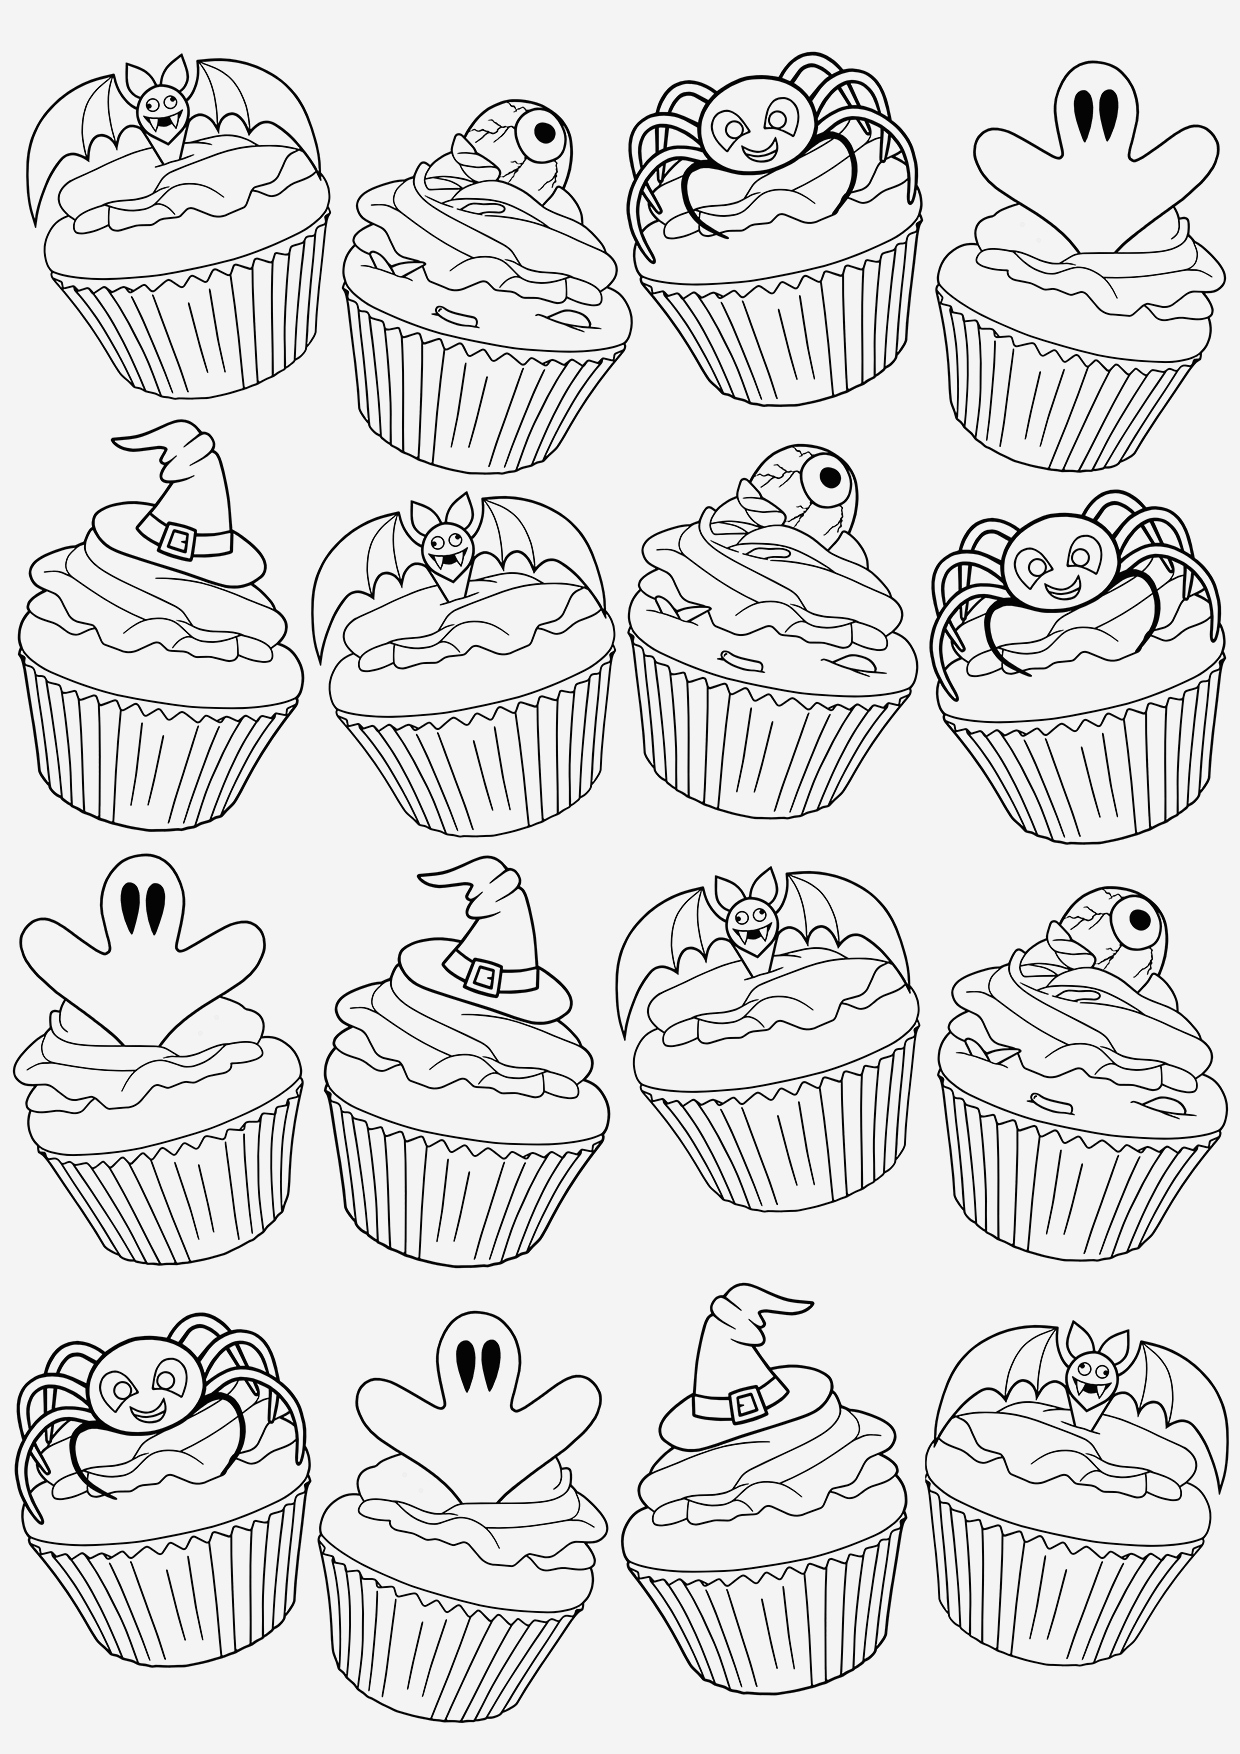 Coloriage Cupcake à Imprimer Inspirational Cupcakes and Cakes Coloring Pages Of Coloriage Cupcake à Imprimer